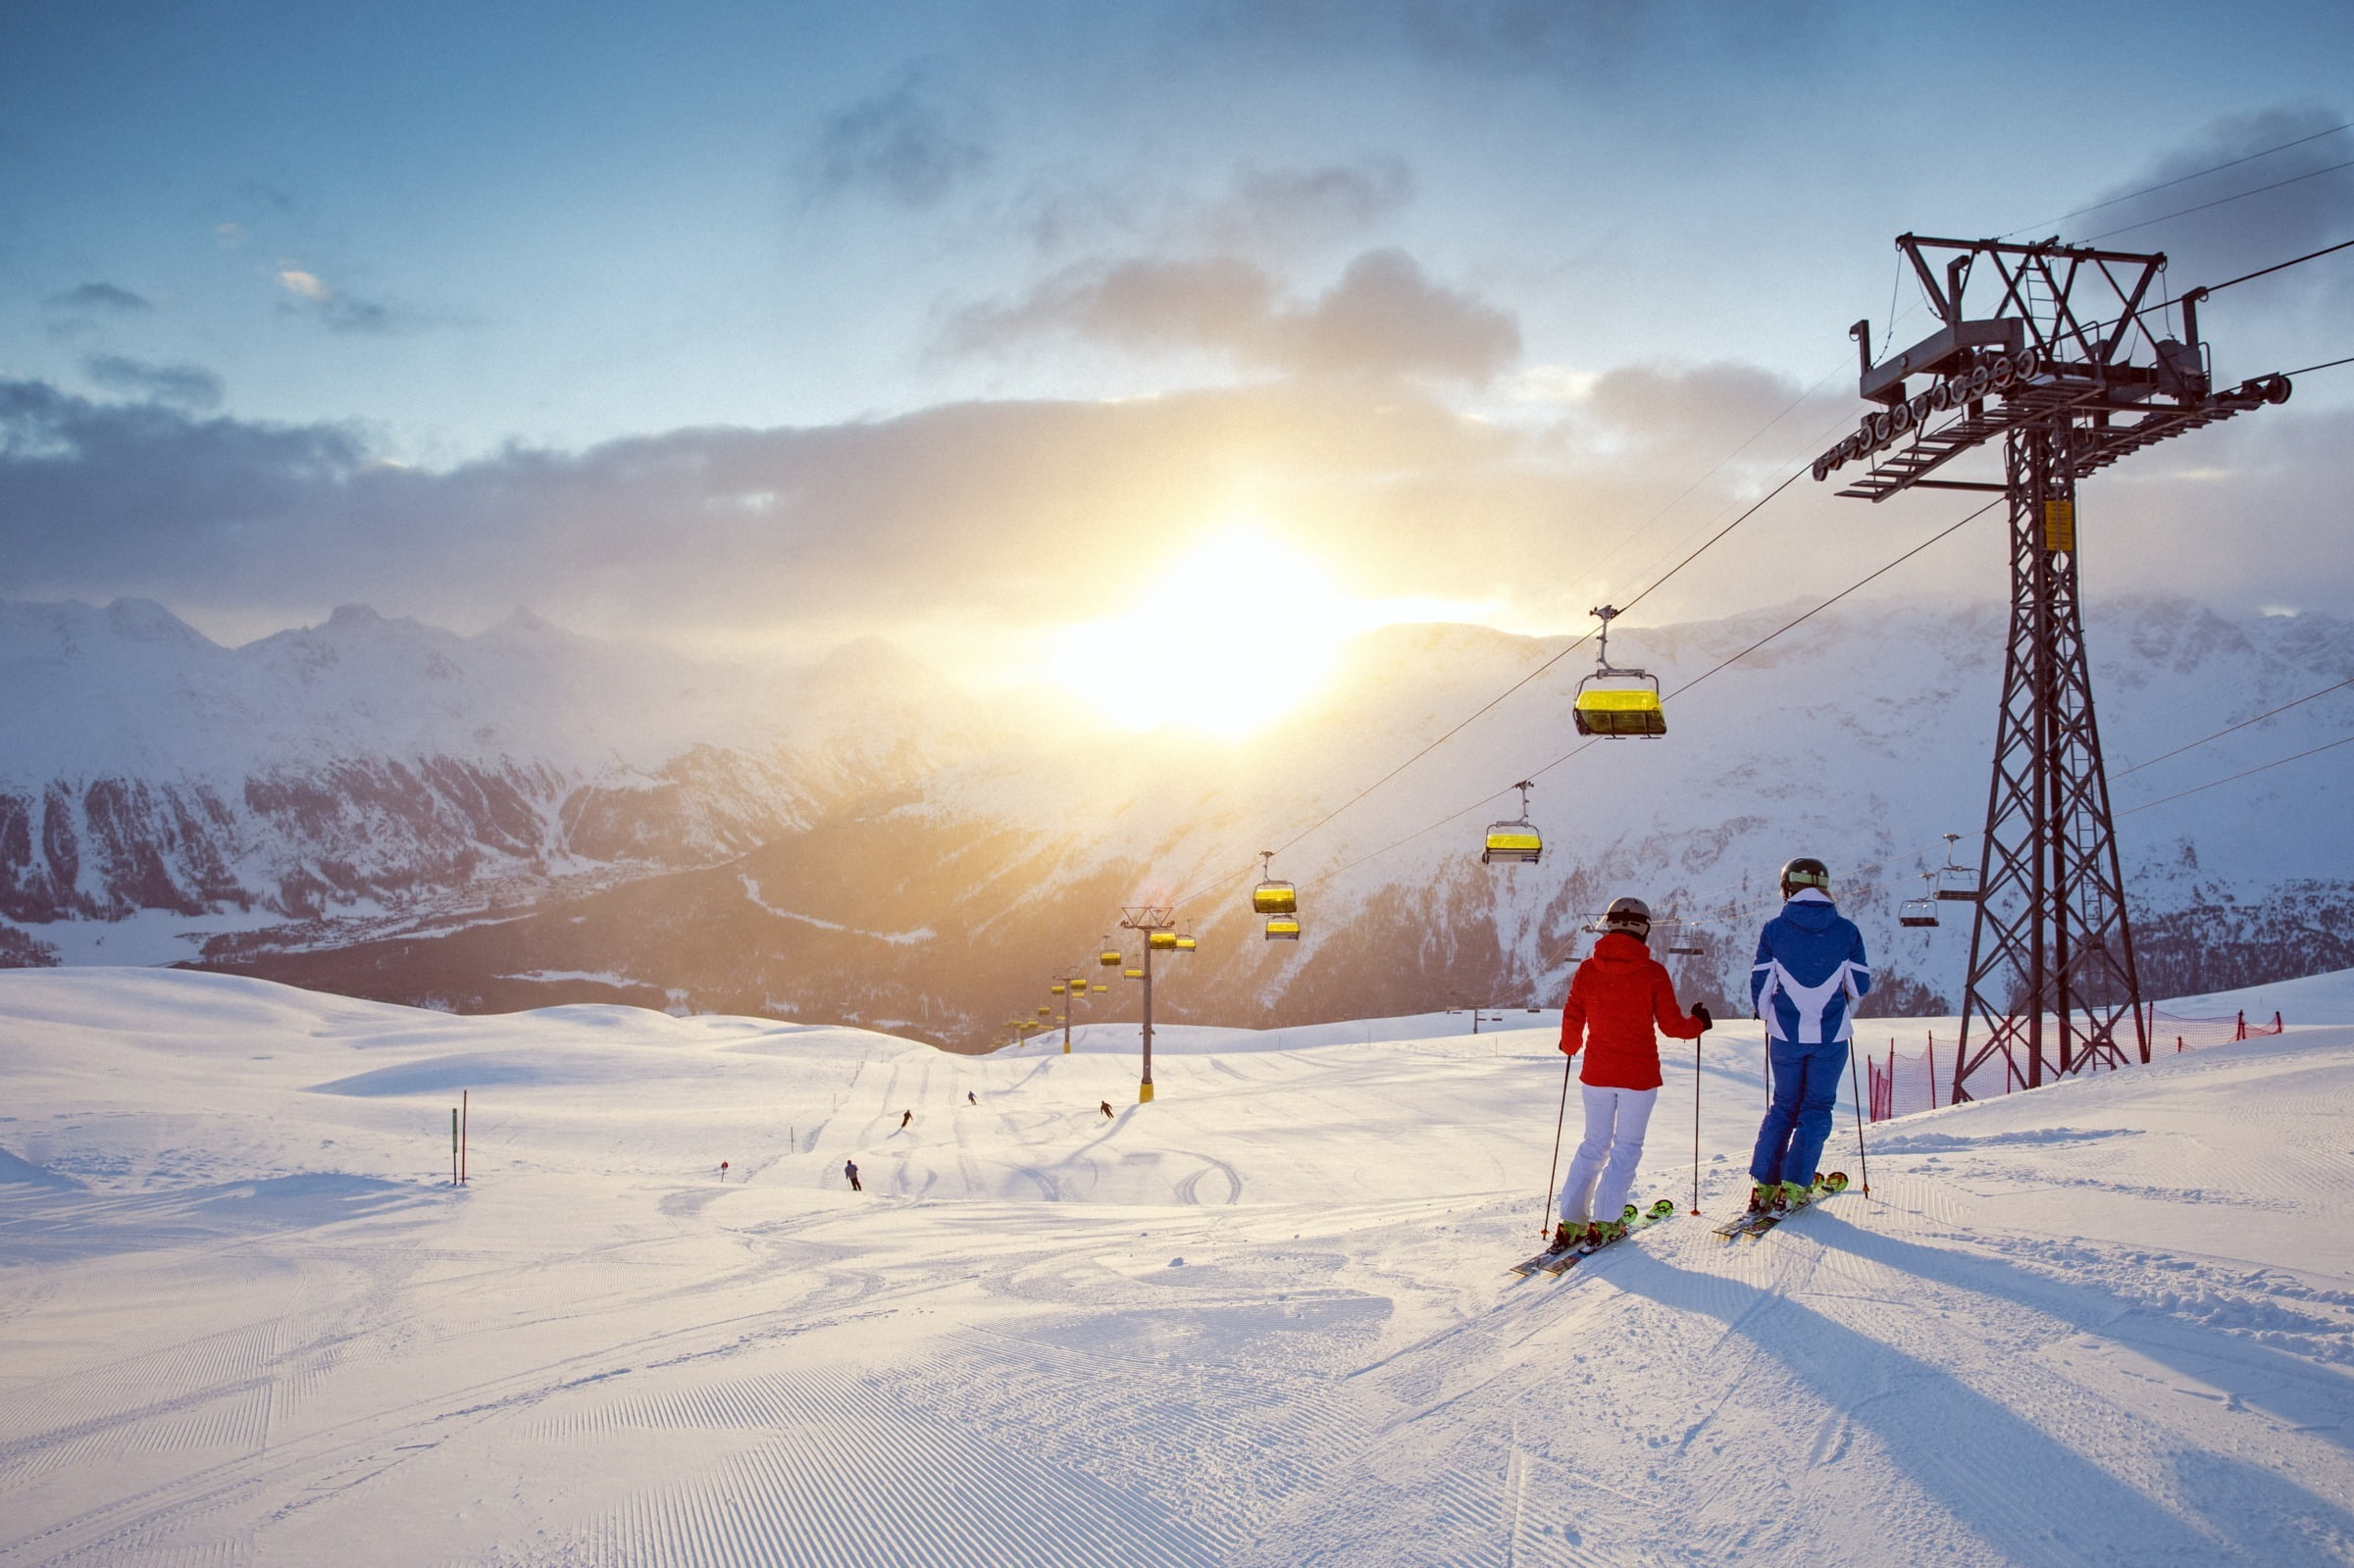 Benefit from two ski pass offers